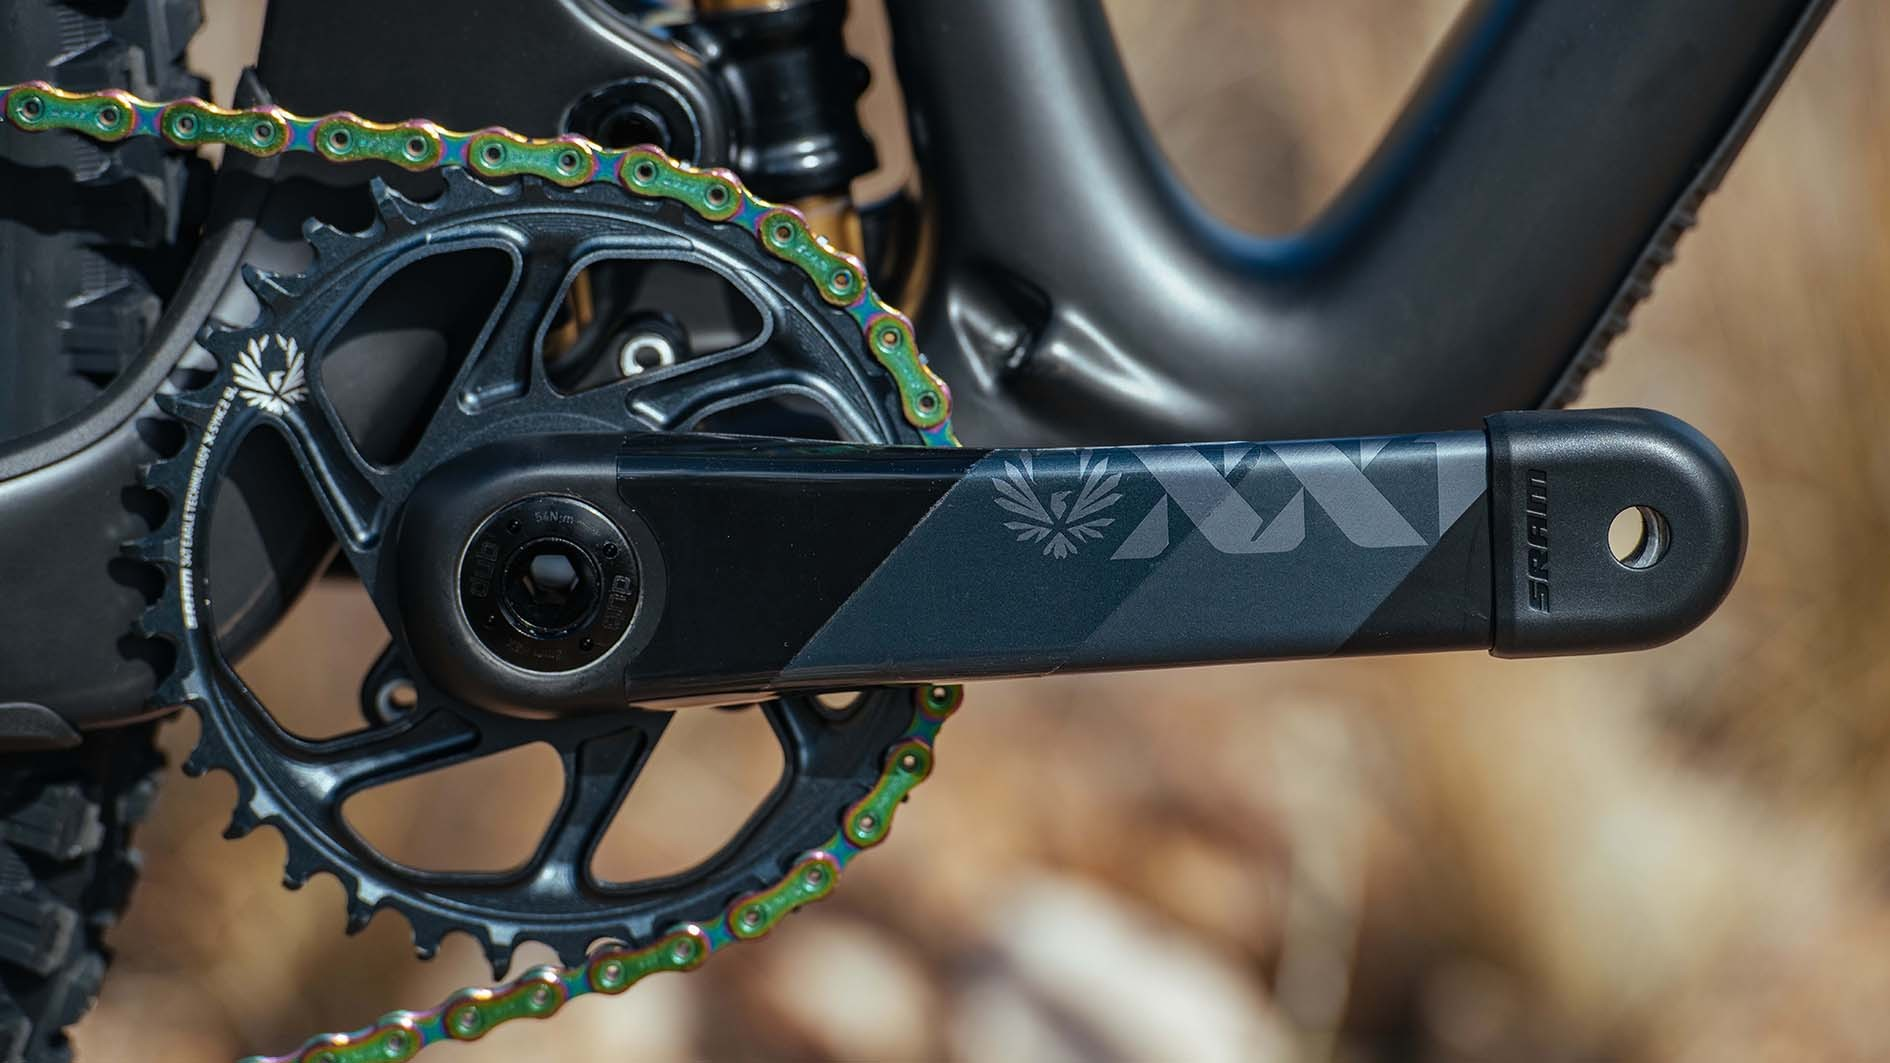 SRAM is selling XX1 (and X01) Eagle AXS as a complete drivetrain. That means along with the shifter and derailleur, there's the cranks, chainring, chain and cassette which are the same as used on the mechanical XX1 transmission